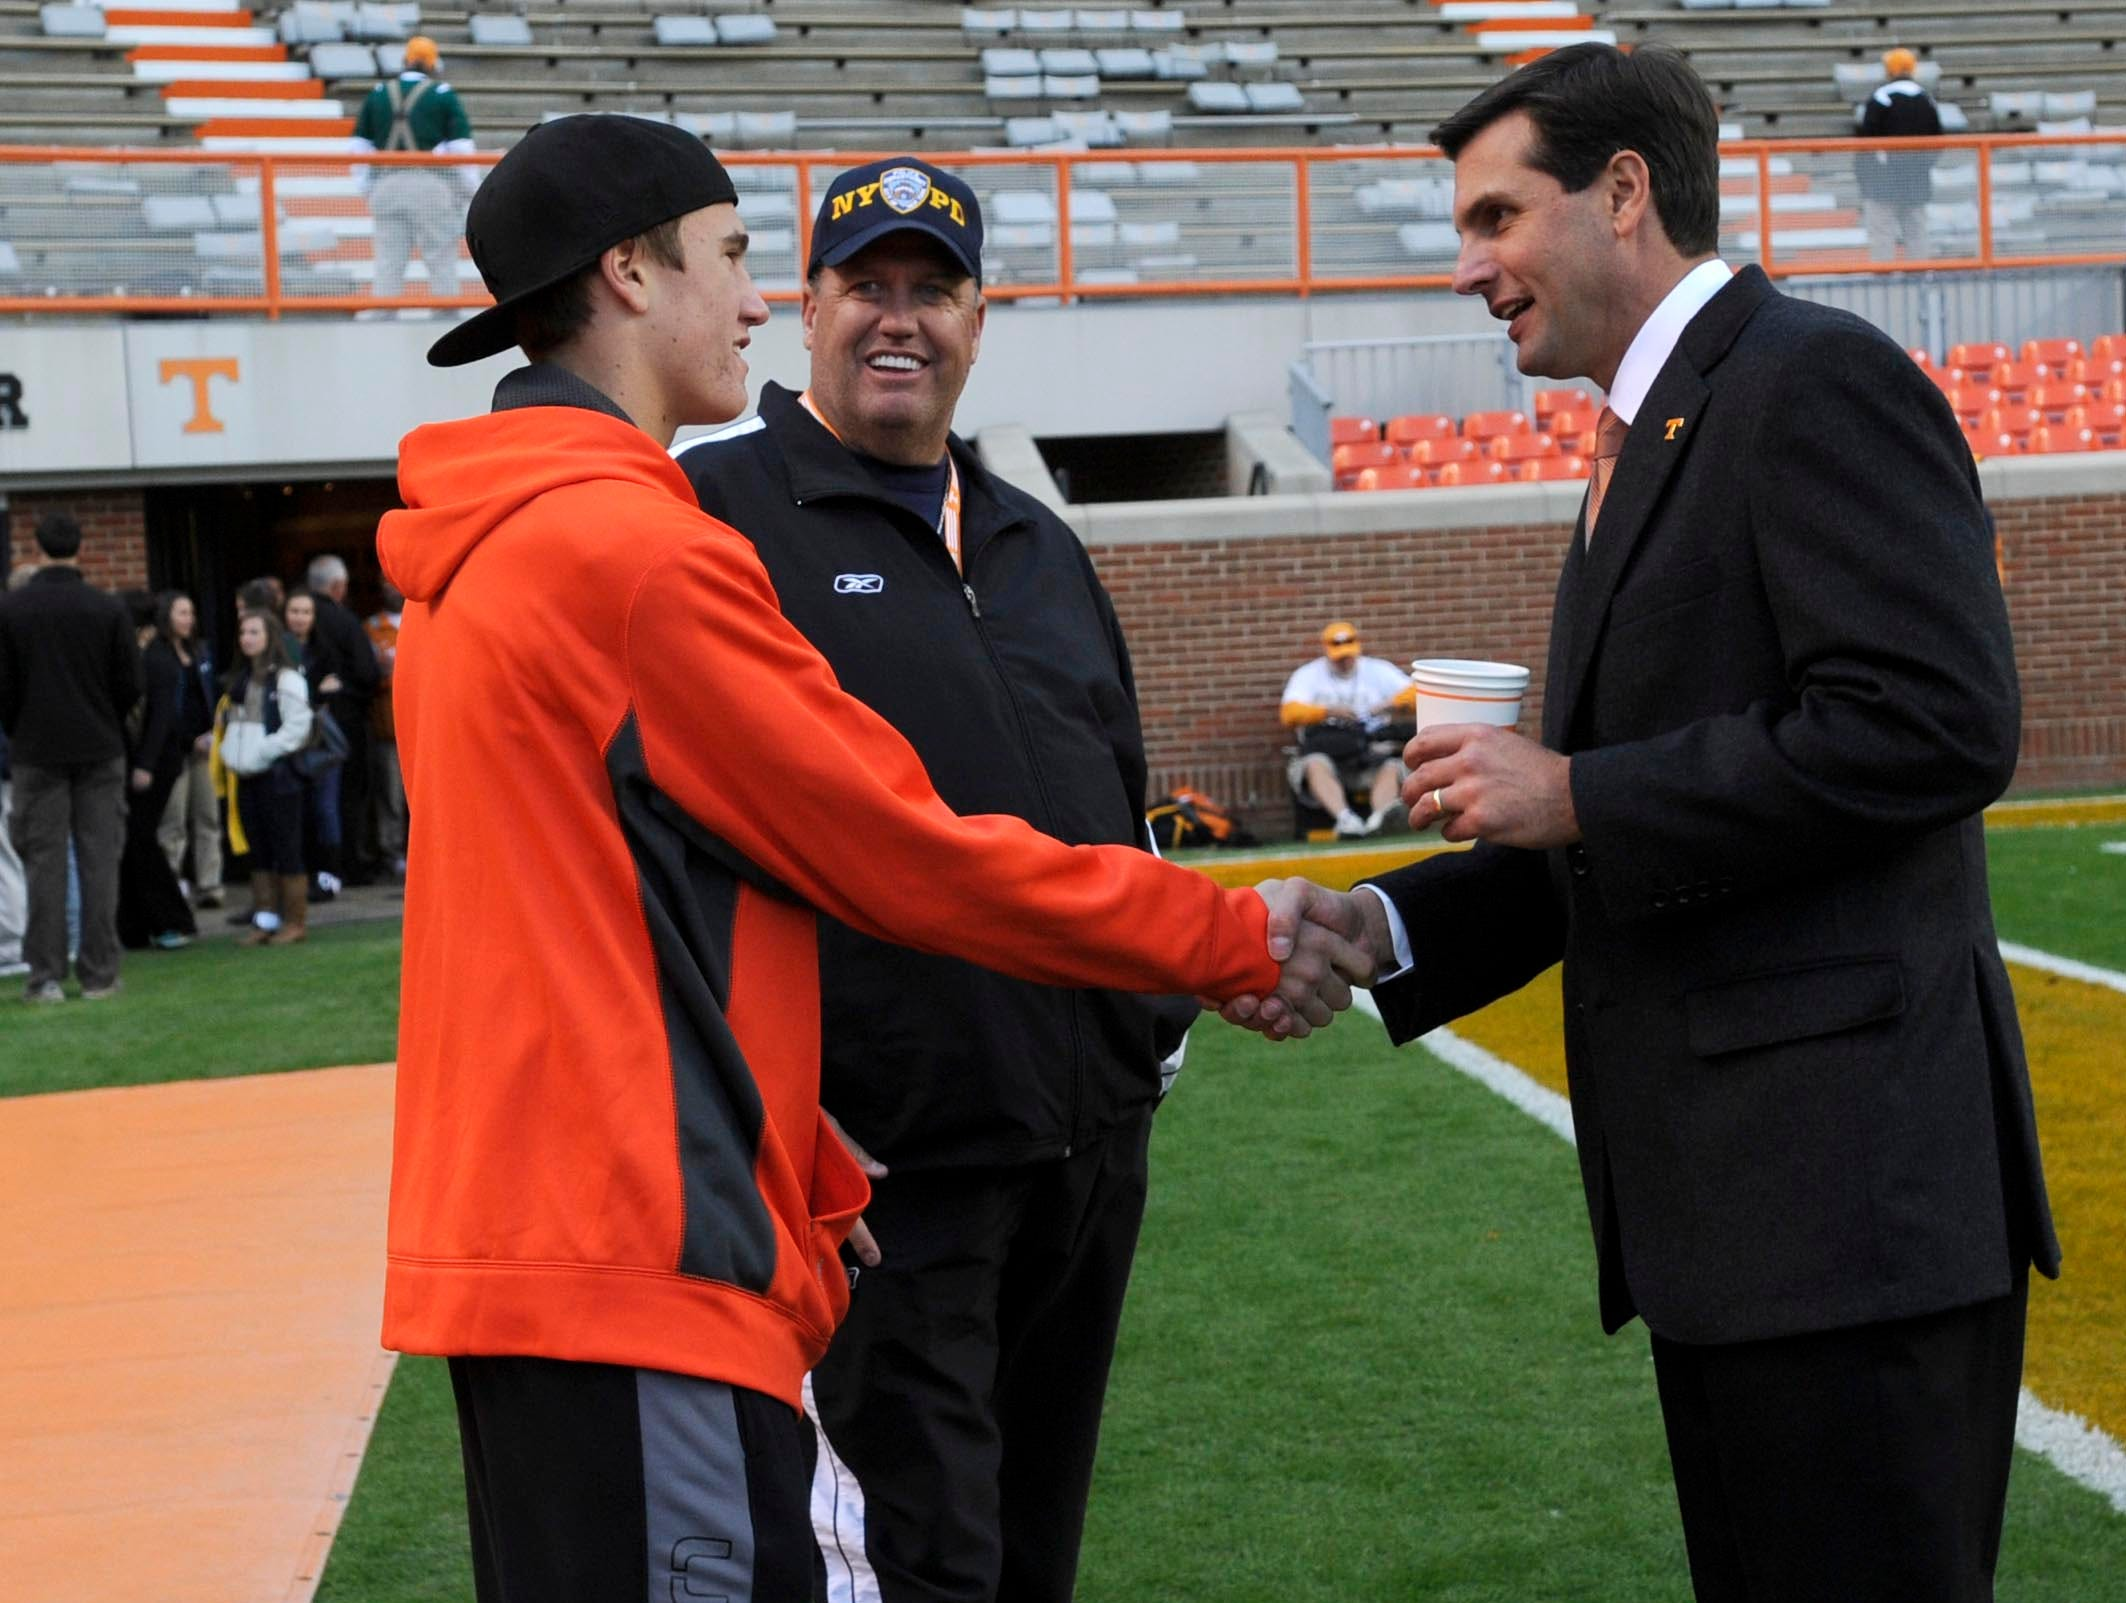 Tennessee head coach Derek Dooley, right, greets New York Jets head coach Rex Ryan, center and his son, Seth Ryan, as they attend the South Carolina game as part of a recruiting visit at Neyland Stadium on Saturday, Oct. 29, 2011.